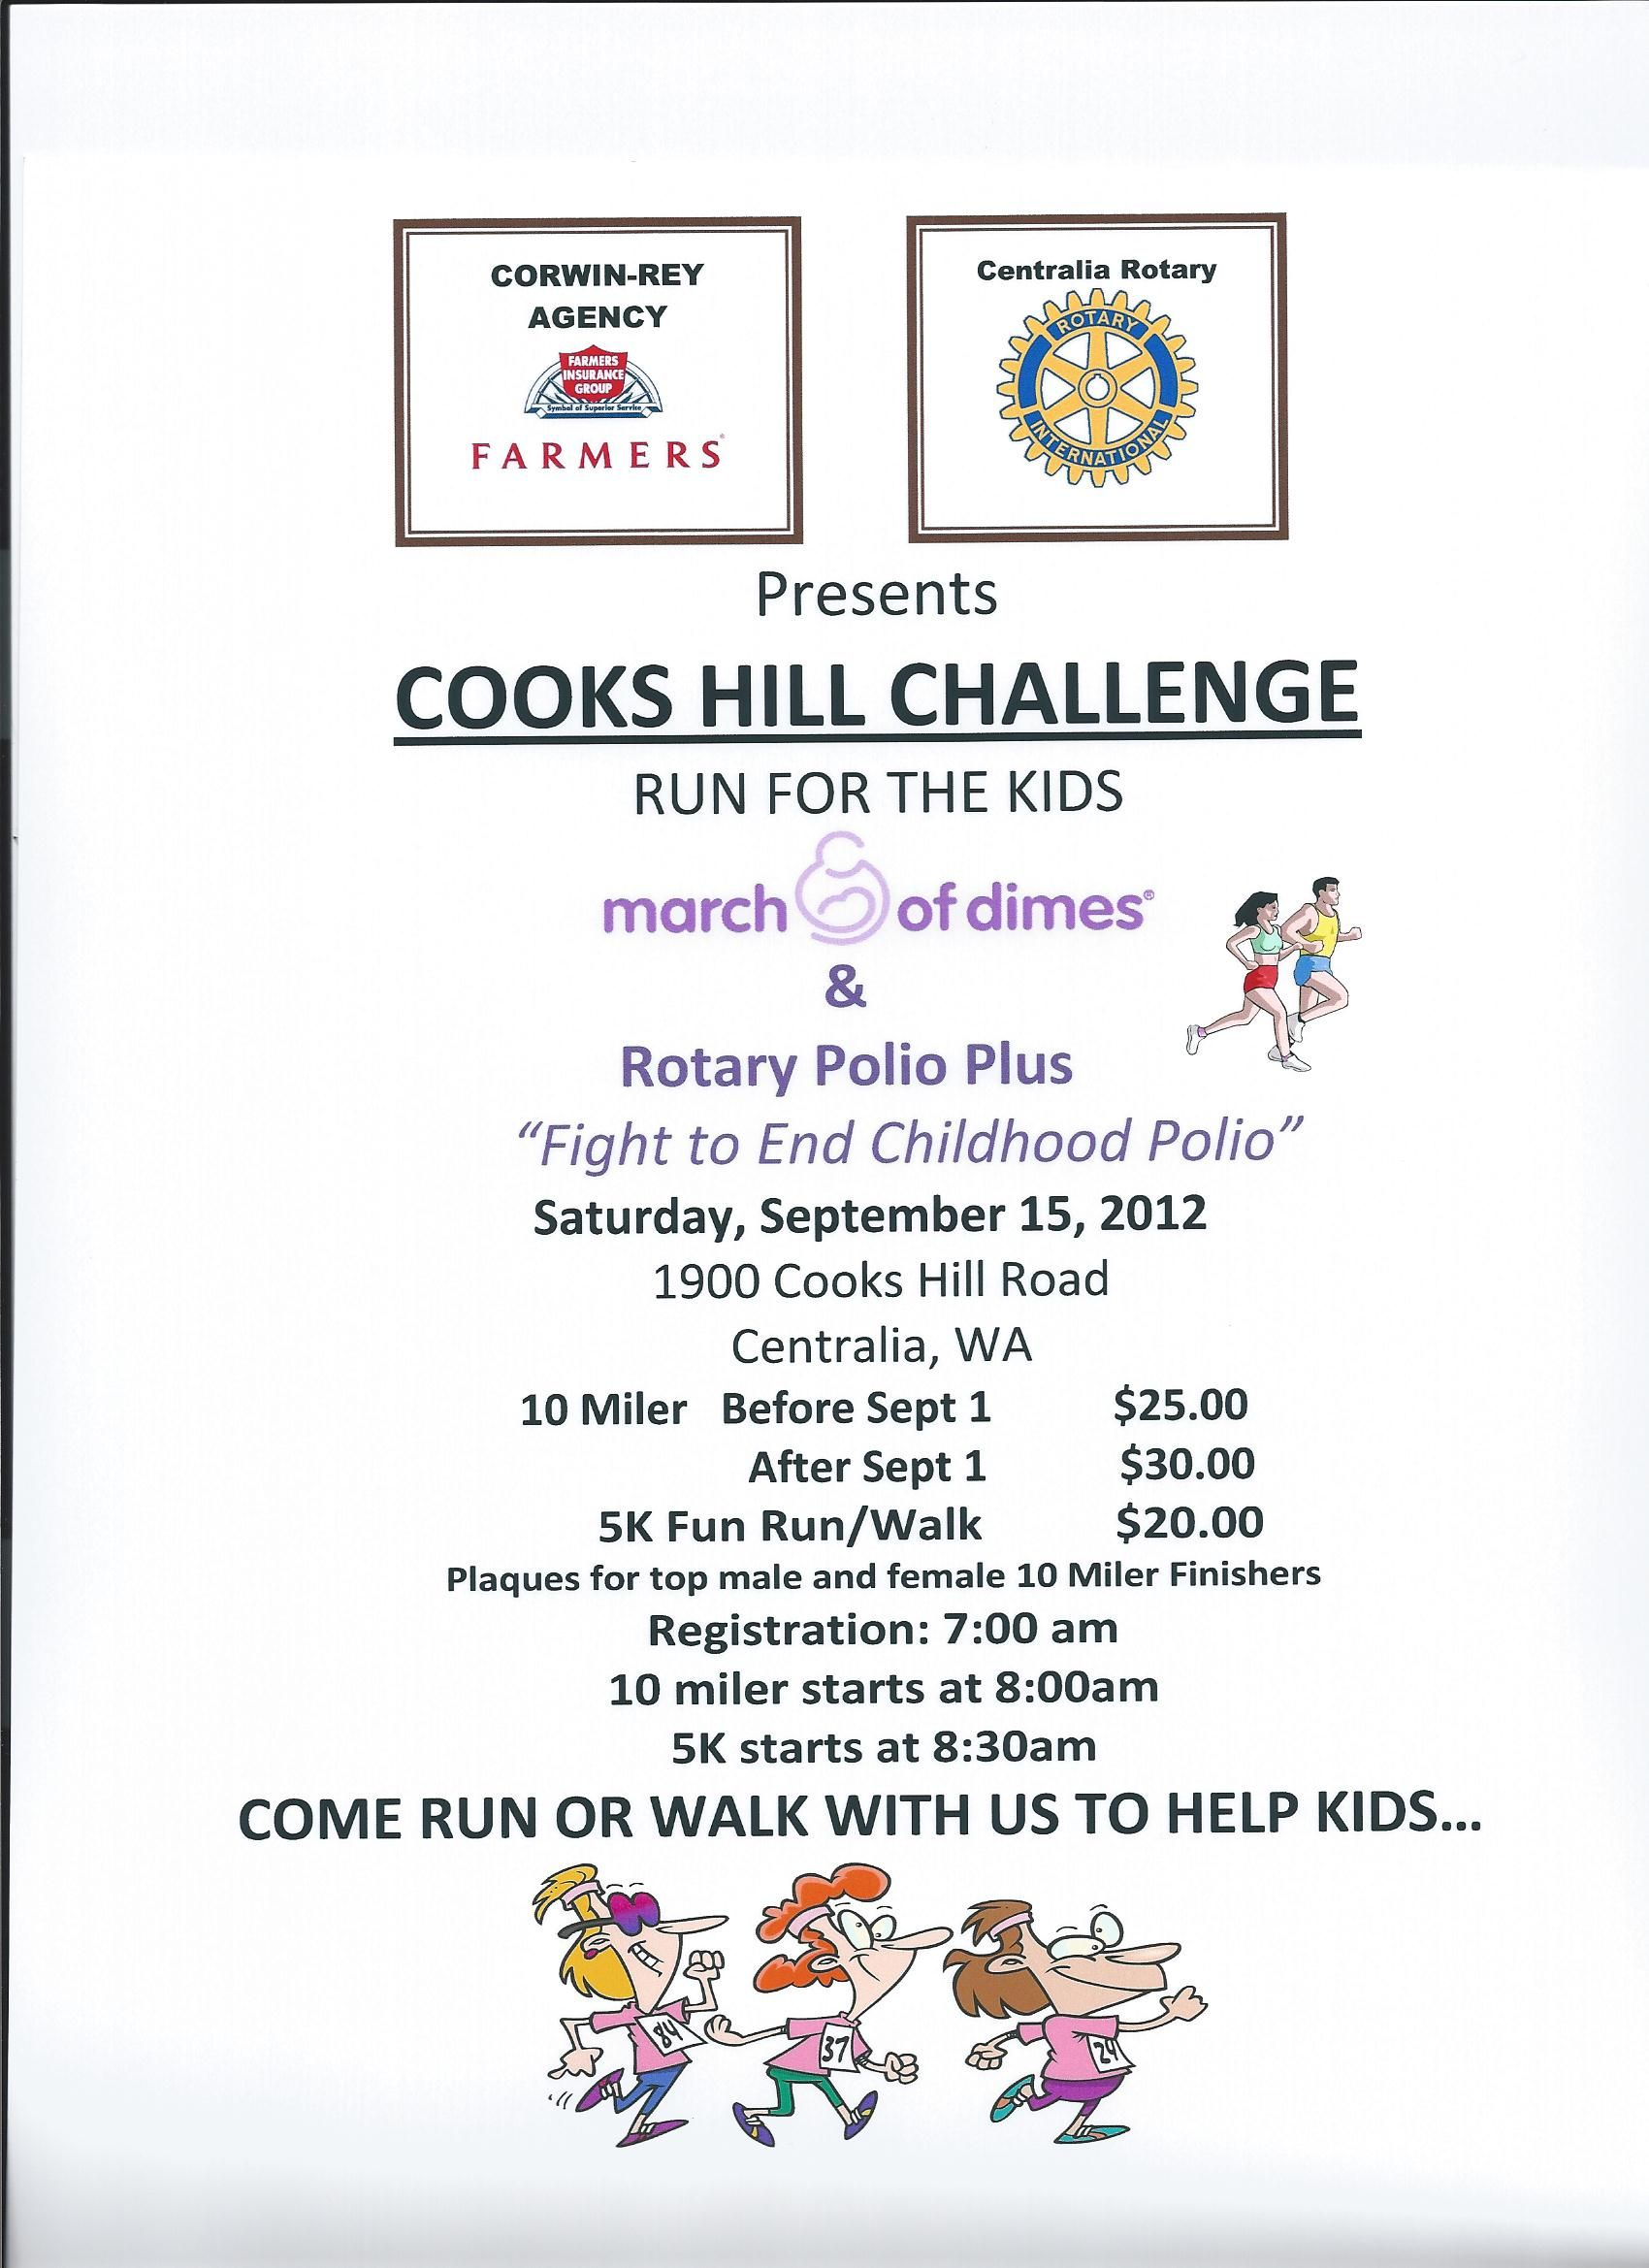 We are honored to be a cosponsor for the Cooks Hill